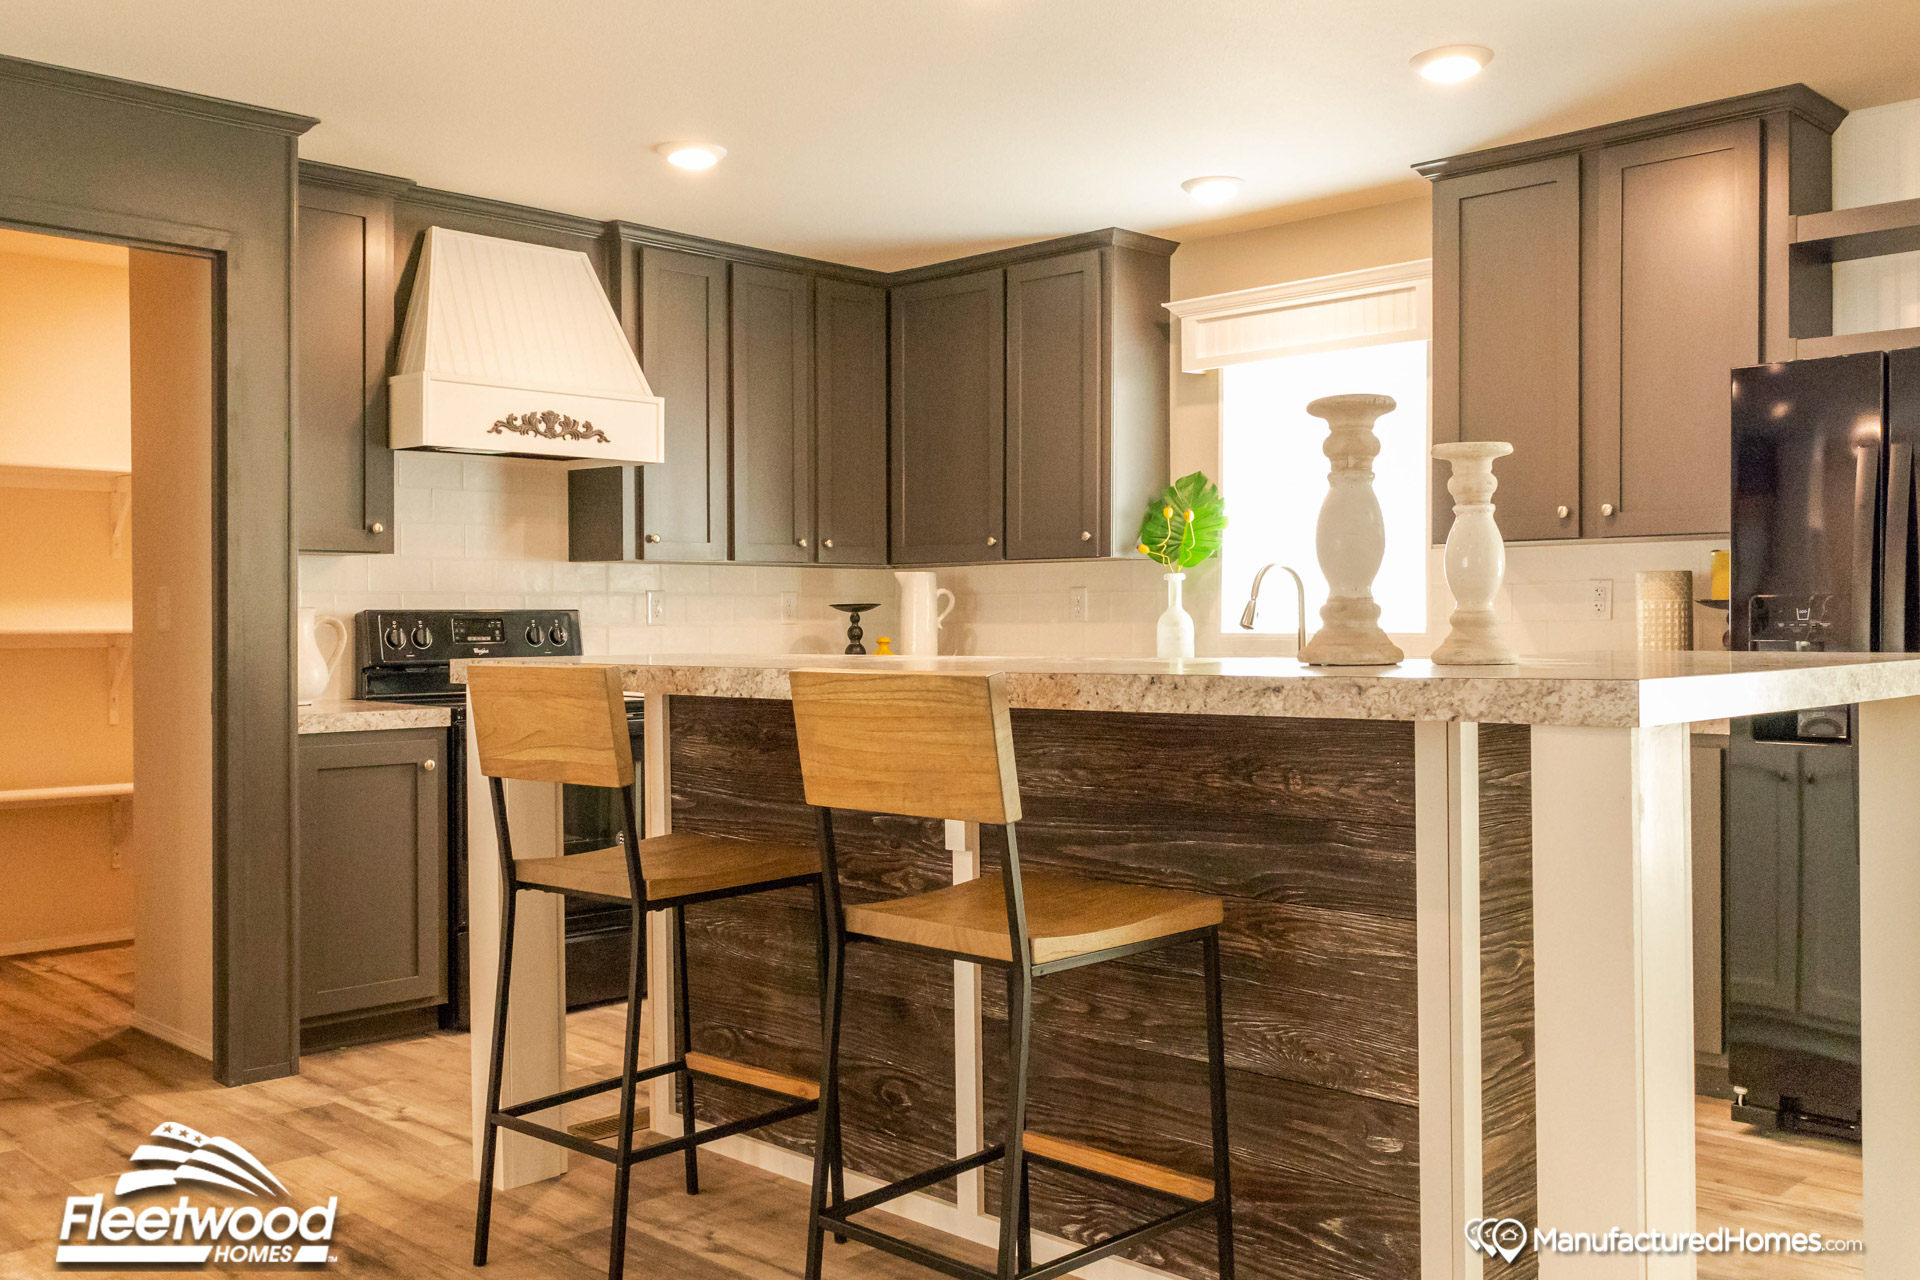 Broadmore 28764T The Sawtooth By Fleetwood Homes Nampa